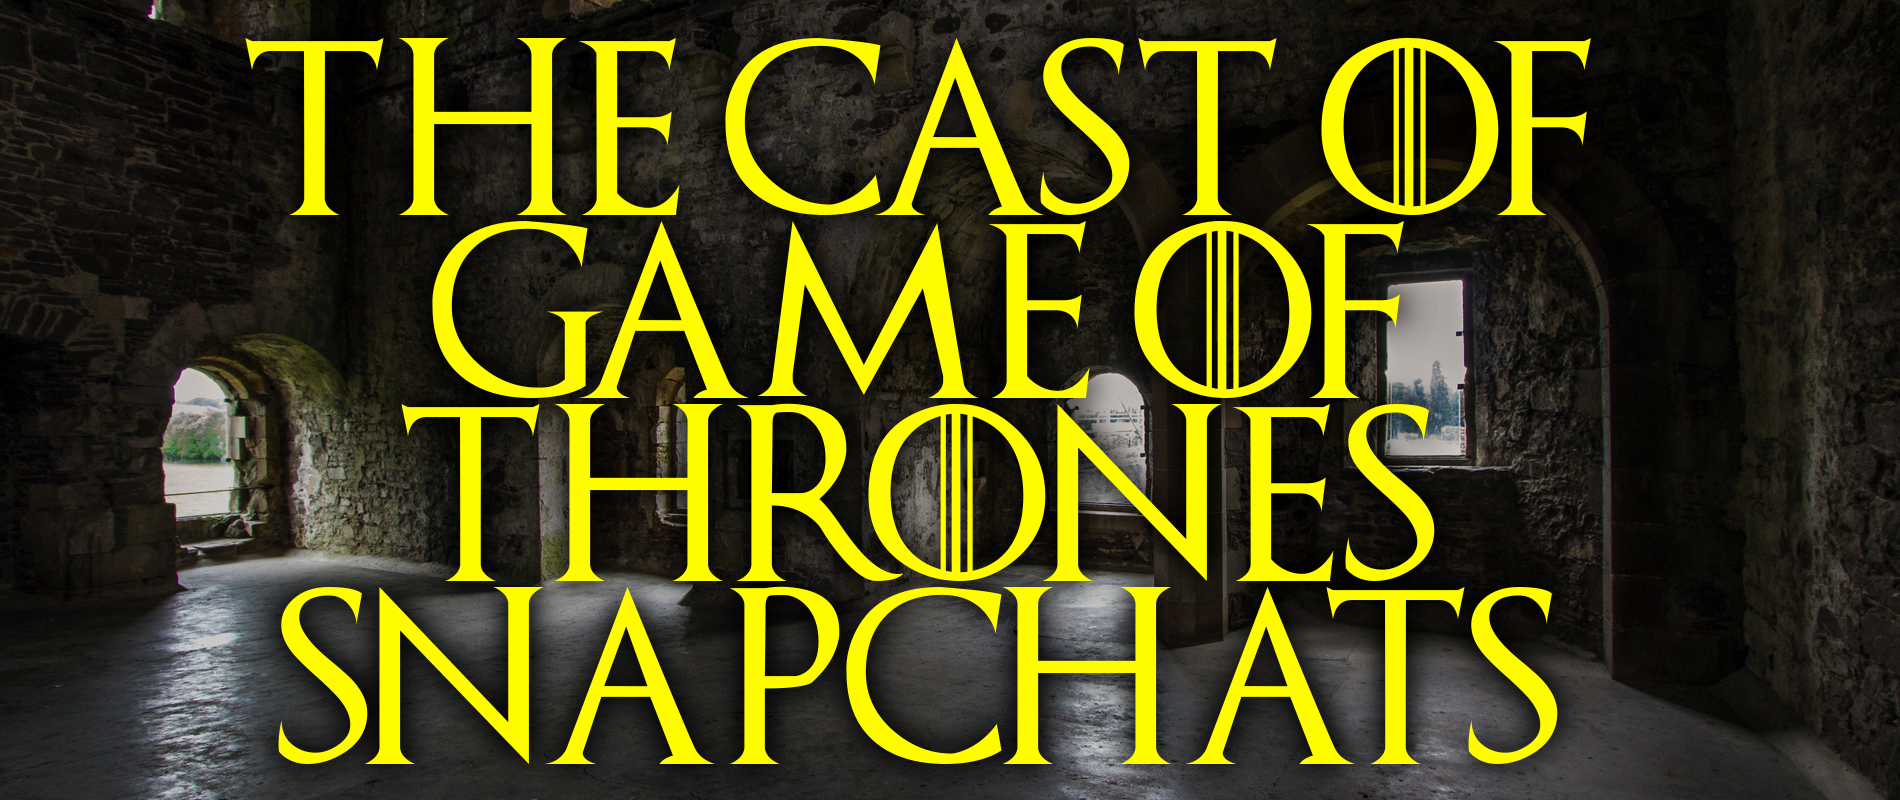 The Cast of Game of Thrones Snapchats